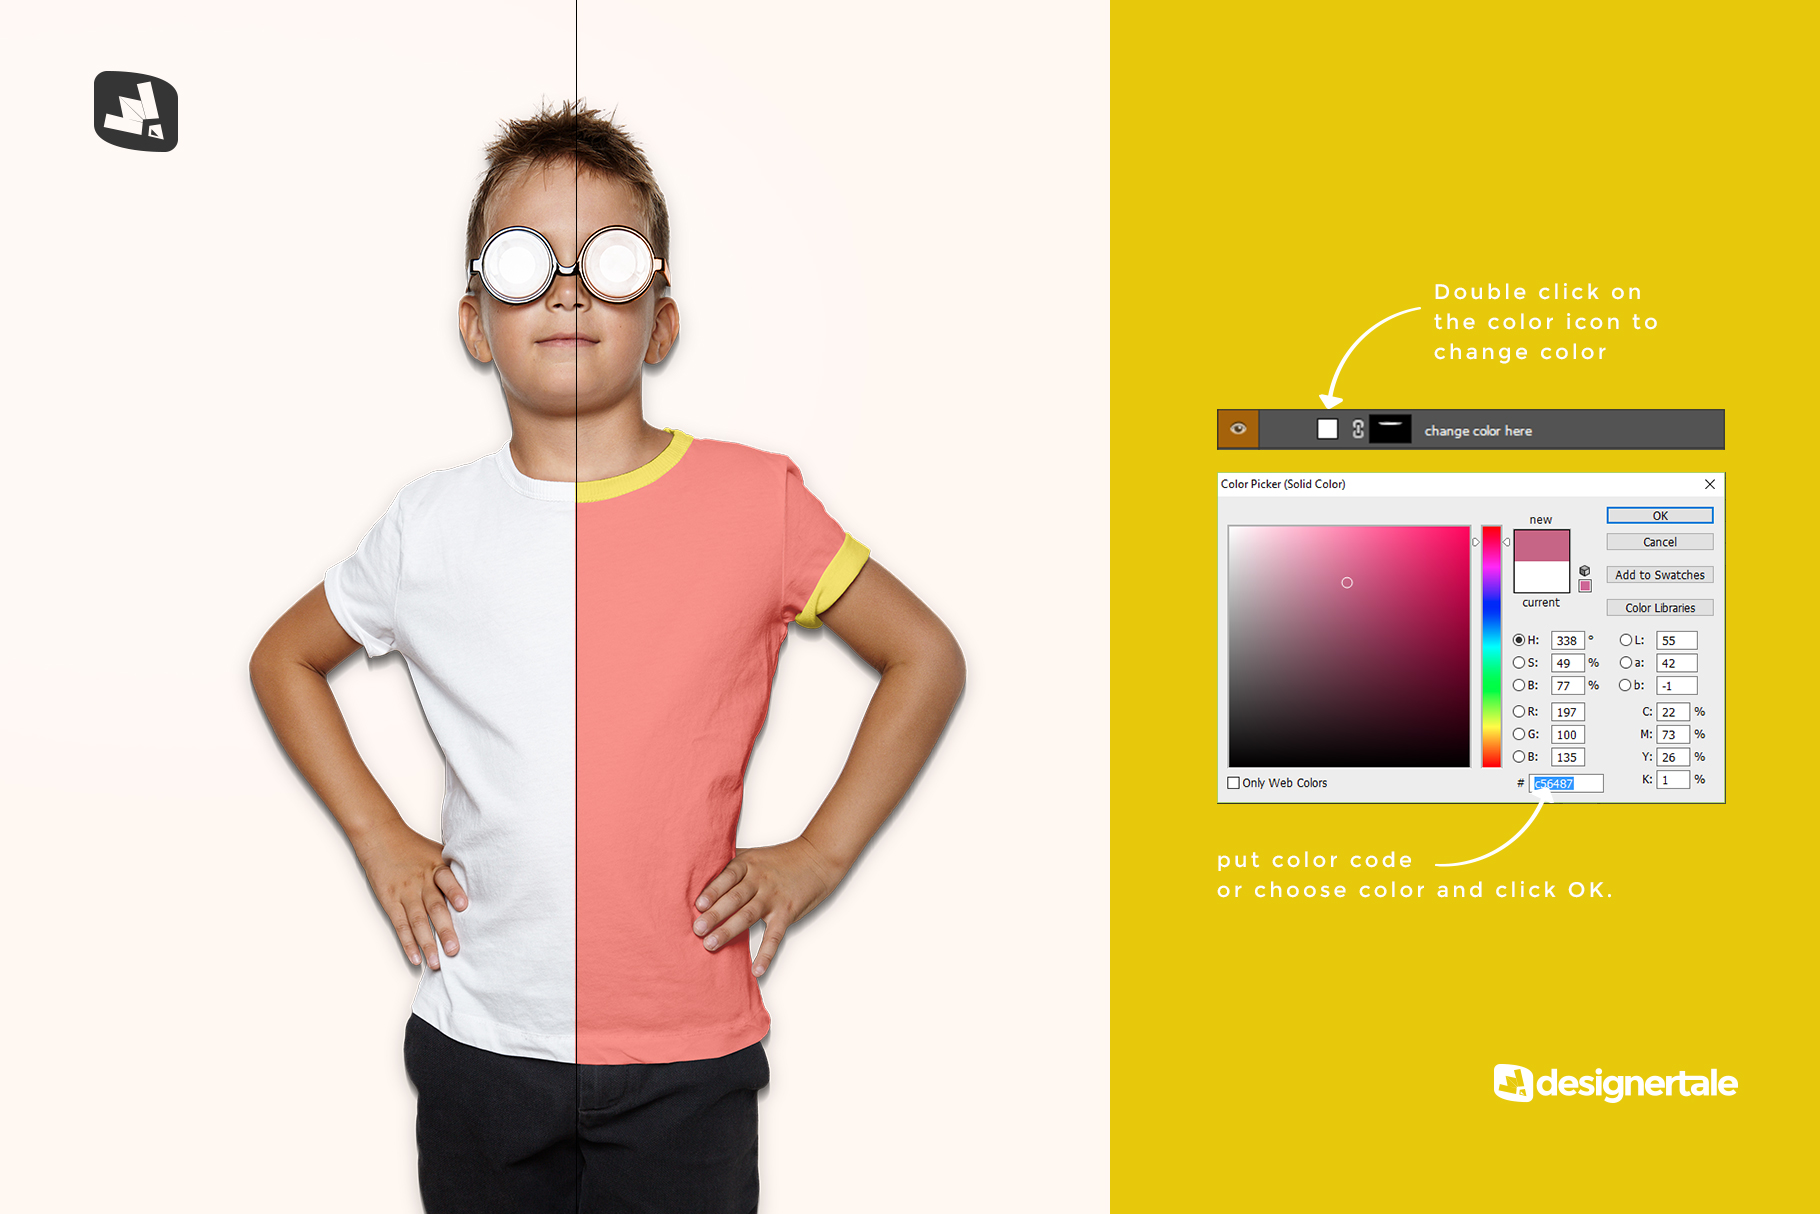 how to change color of the kid's everyday outfit mockup with sunglasses